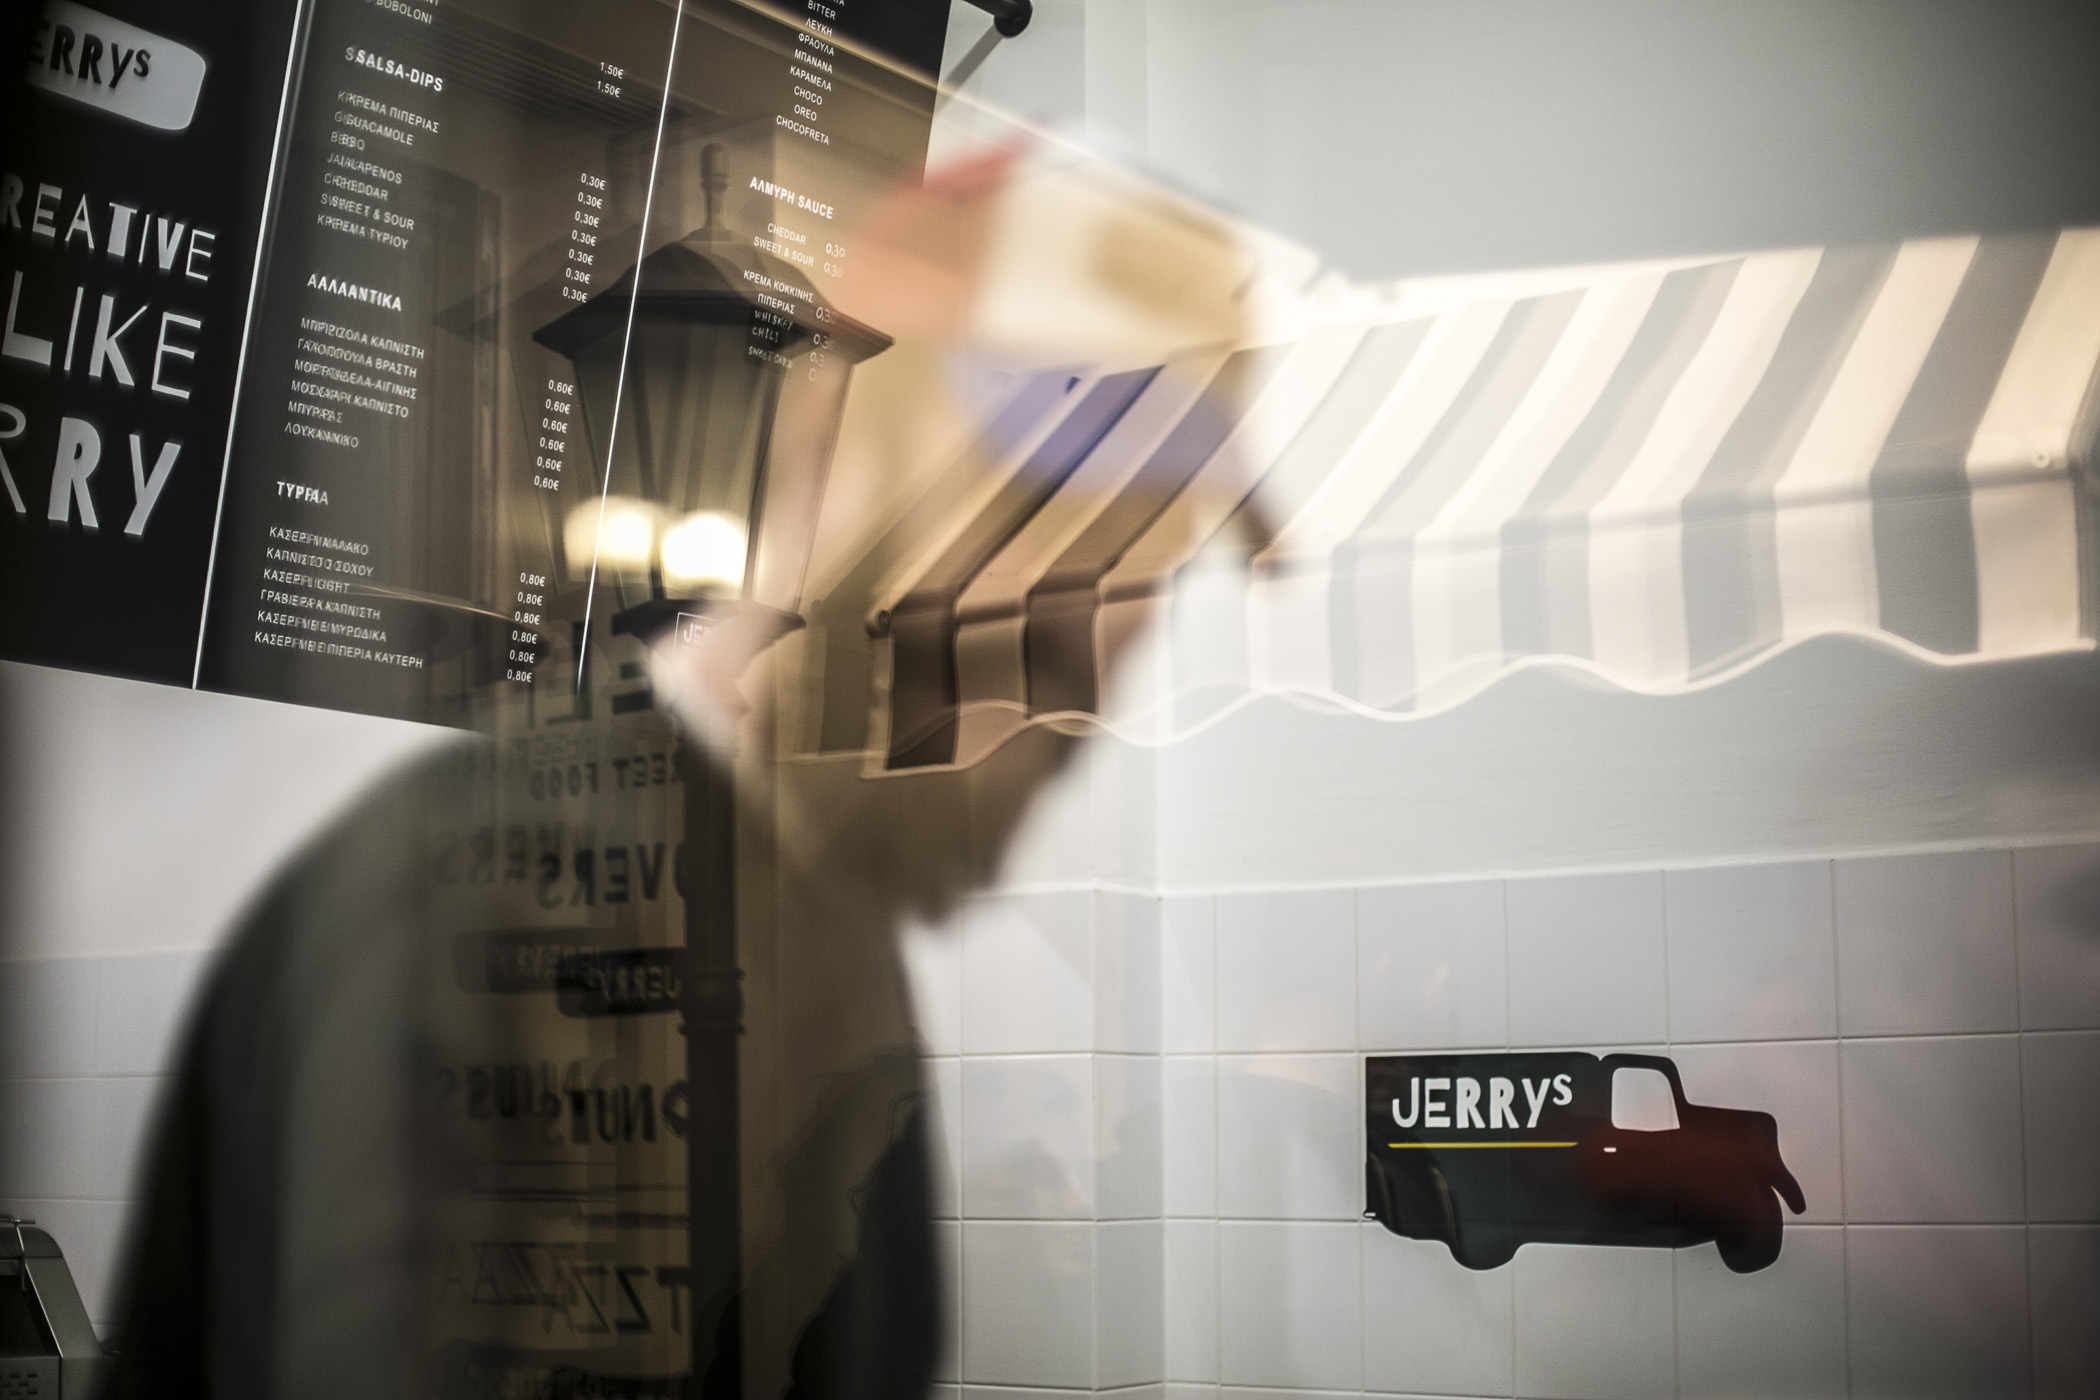 Jerry's Foodtruck